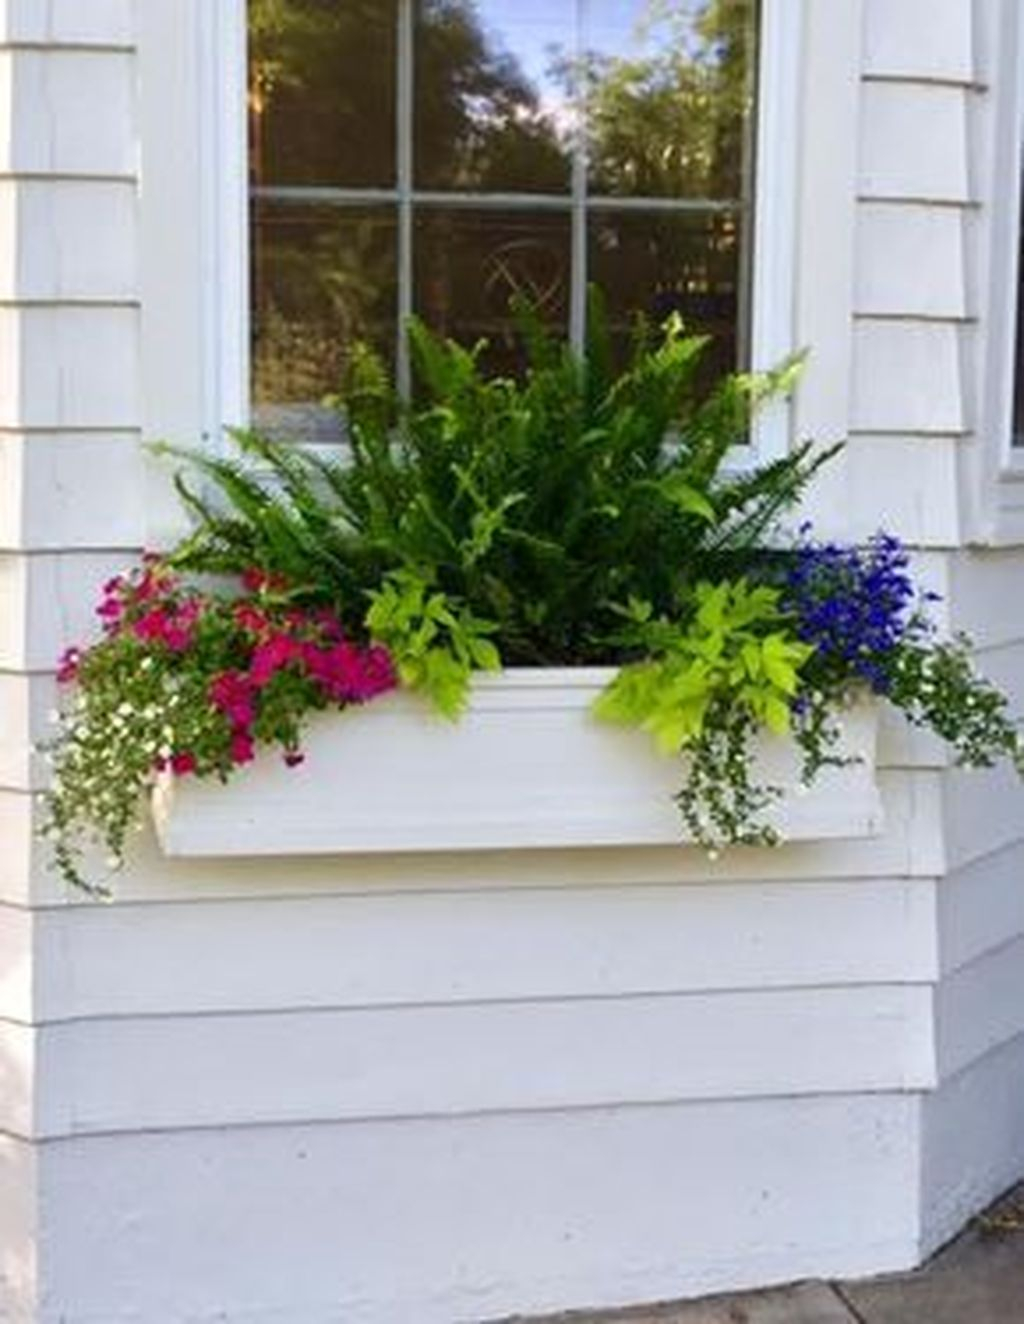 Fabulous Exterior Decoration Ideas With Flower In Window 18